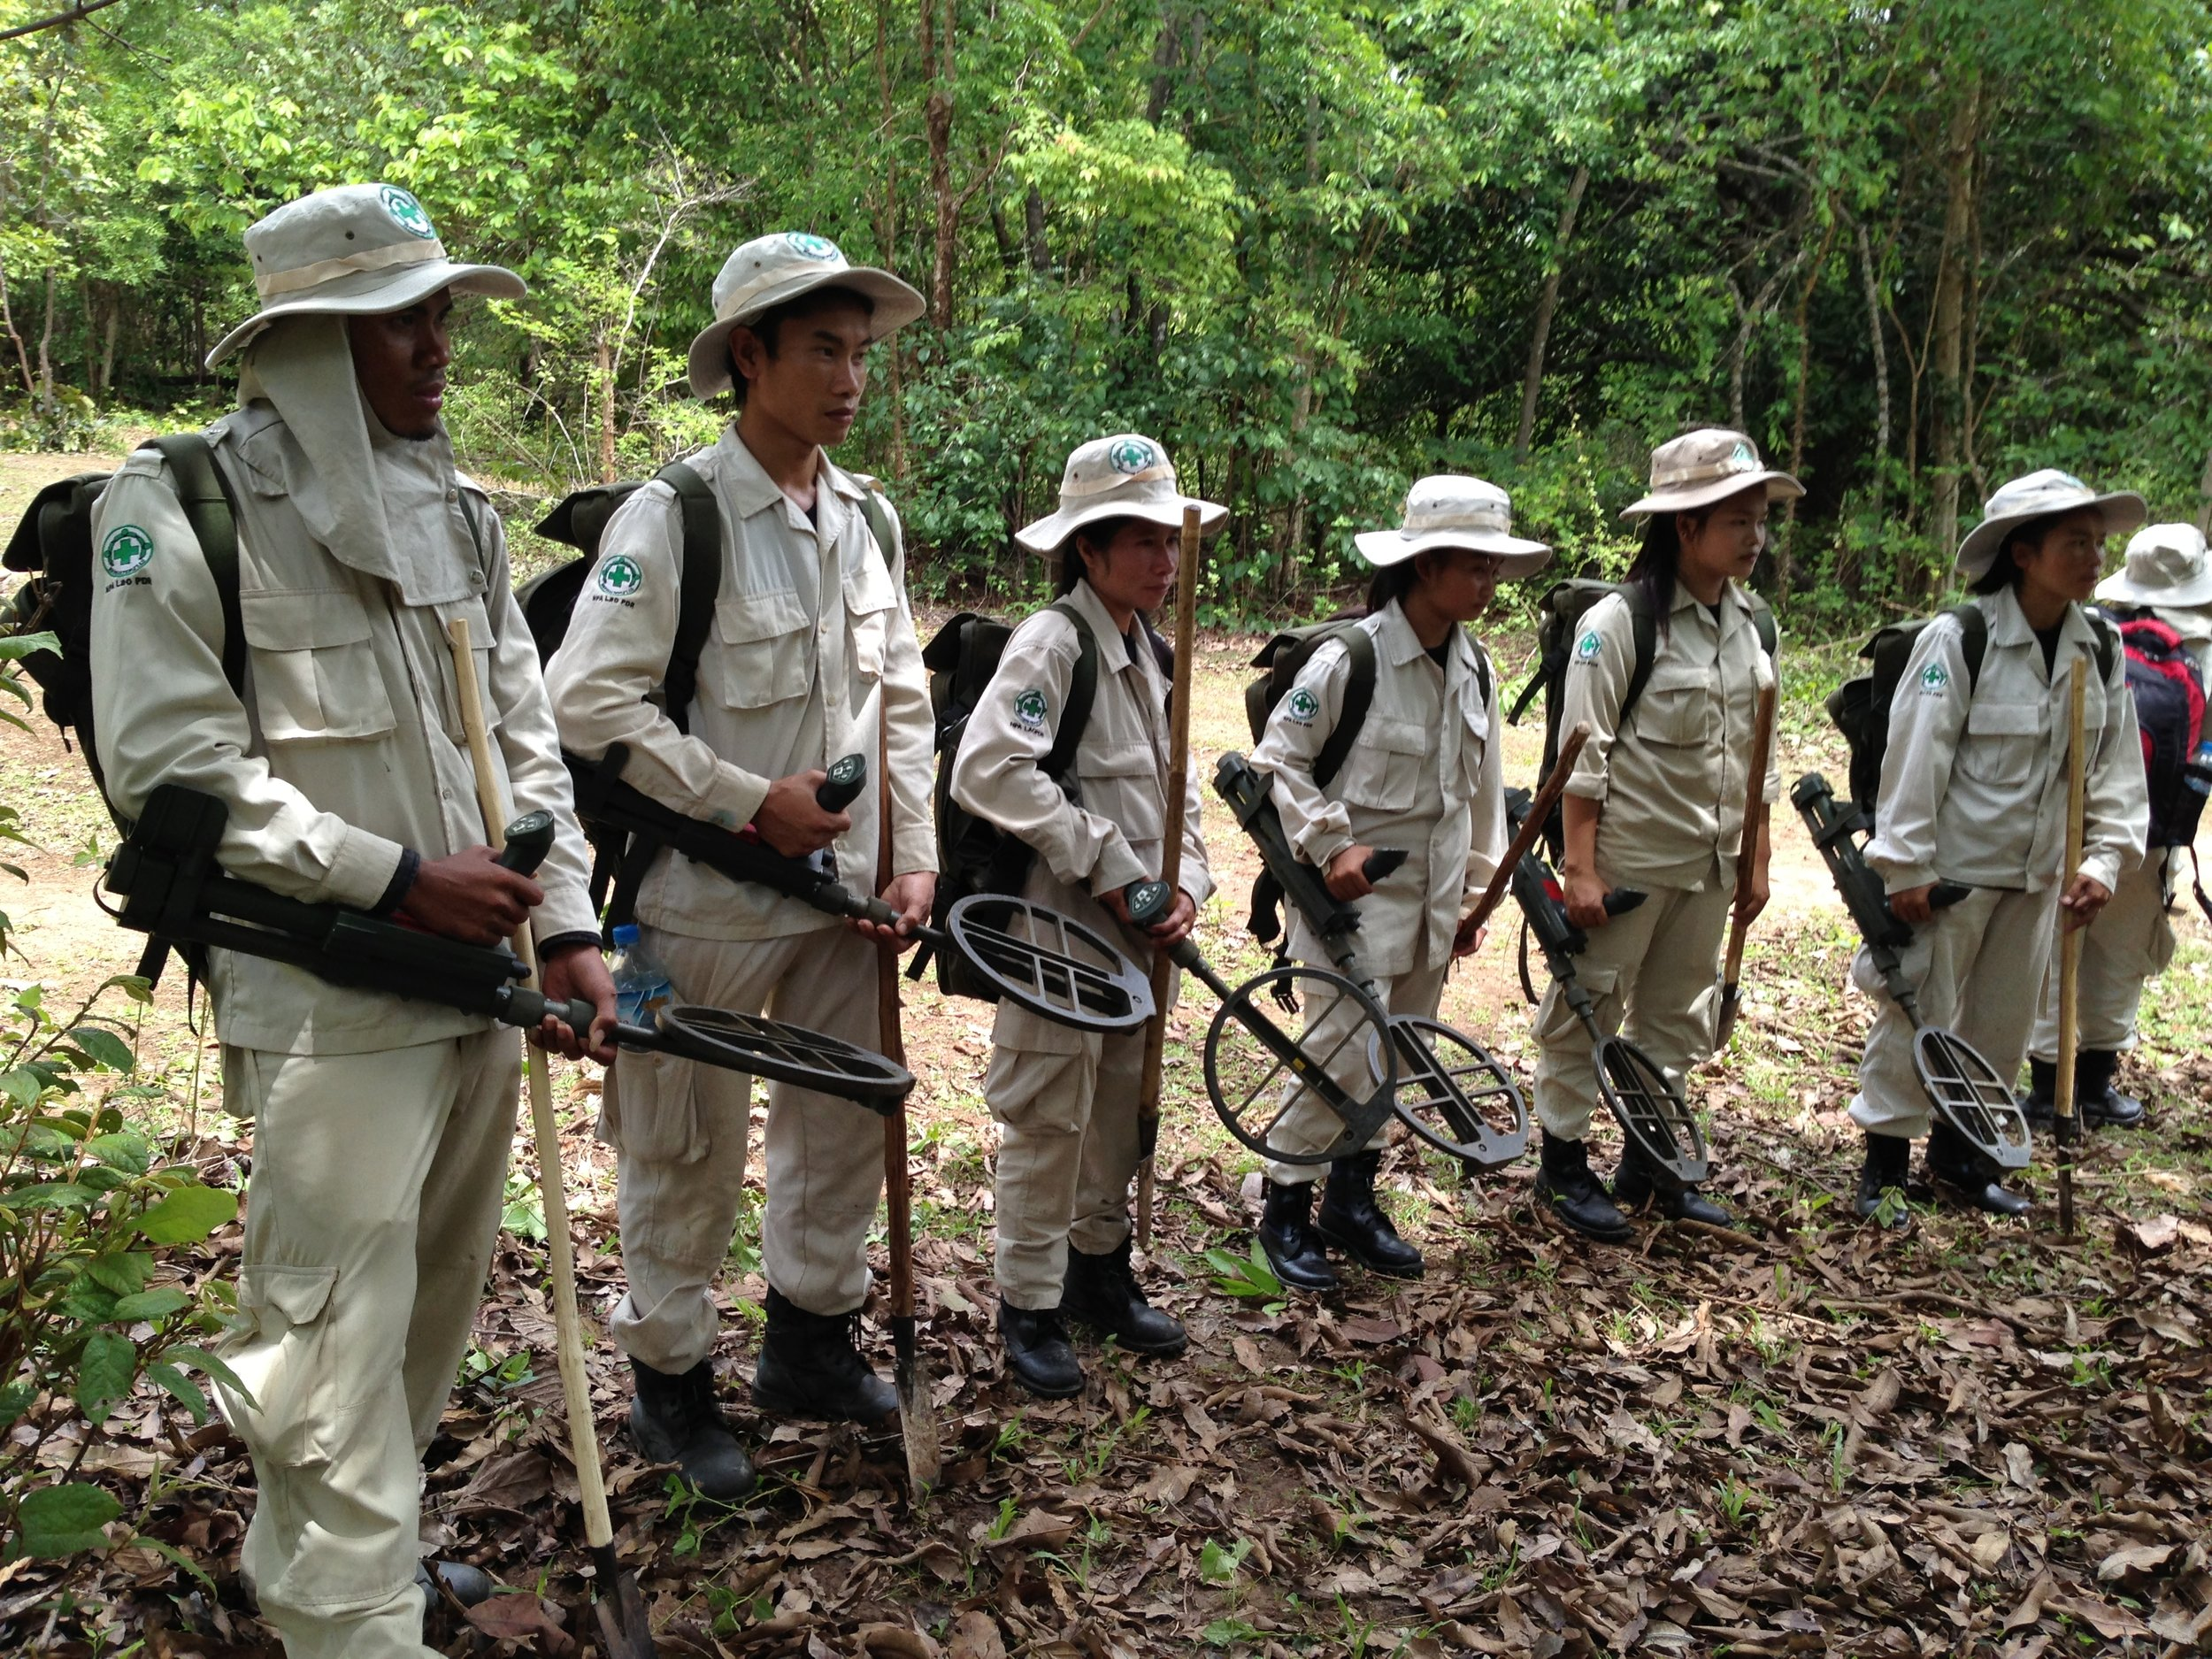 Laotian deminers, part of a Norwegian NGO in the jungles of Laos. Photo: Mike Blanchfield